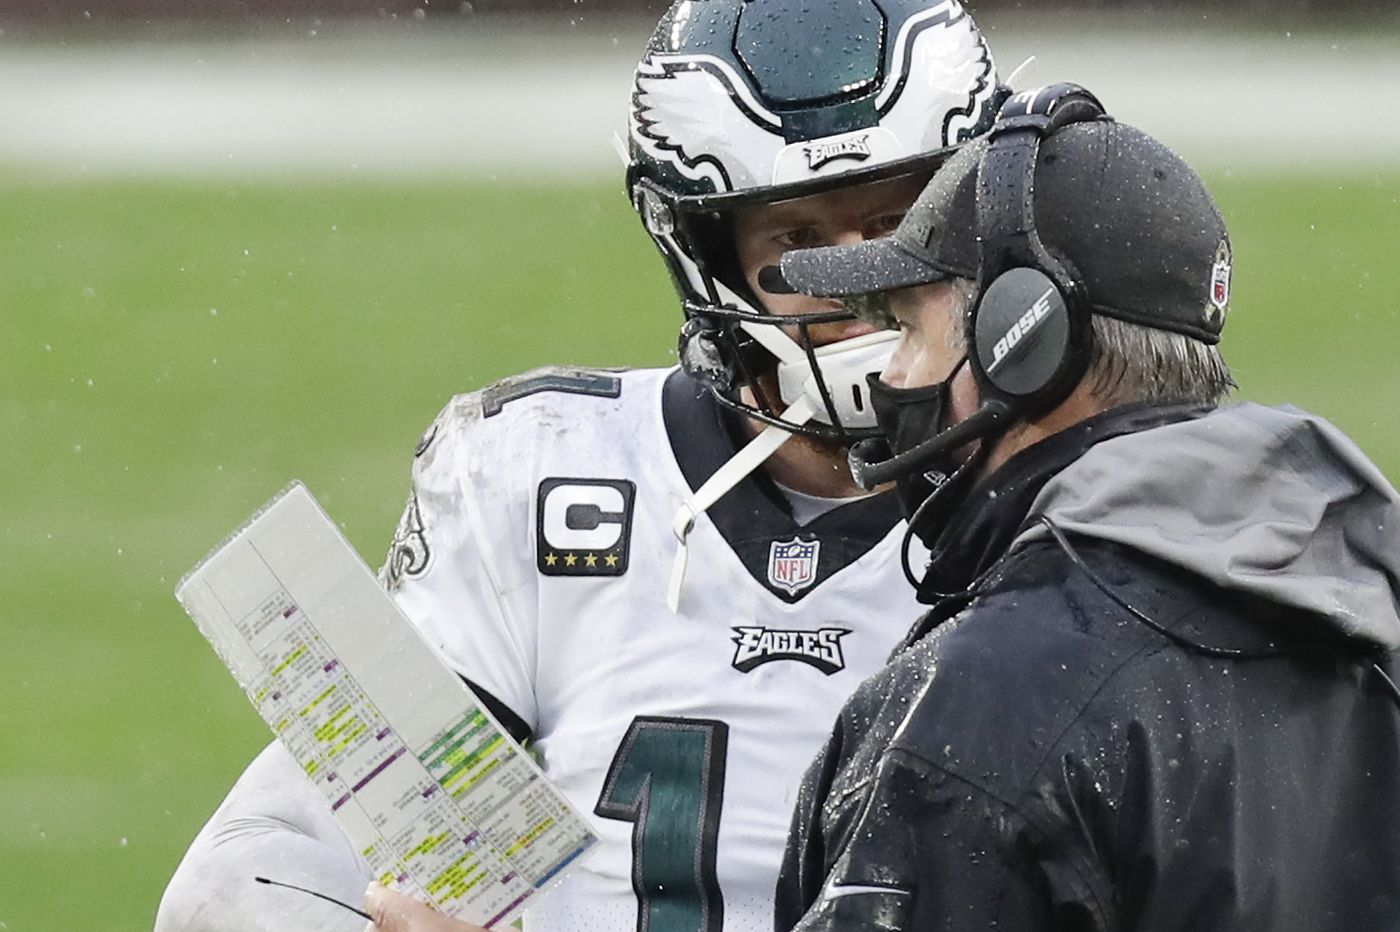 Carson Wentz pilots another Eagles debacle as Jalen Hurts looks on | Marcus Hayes